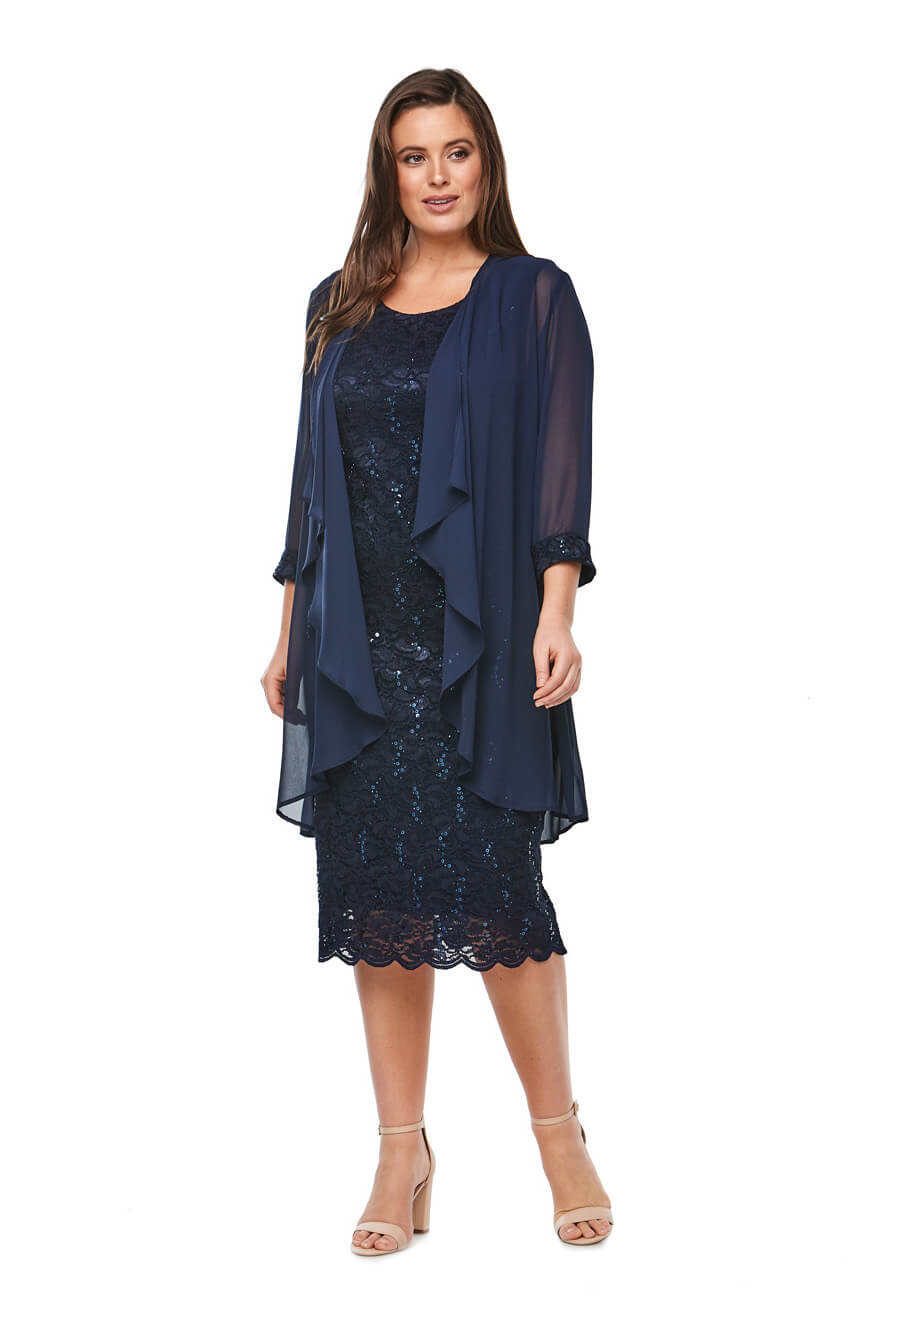 Sequin embroidered cocktail dress with scallop hem and 3/4 waterfall jacket